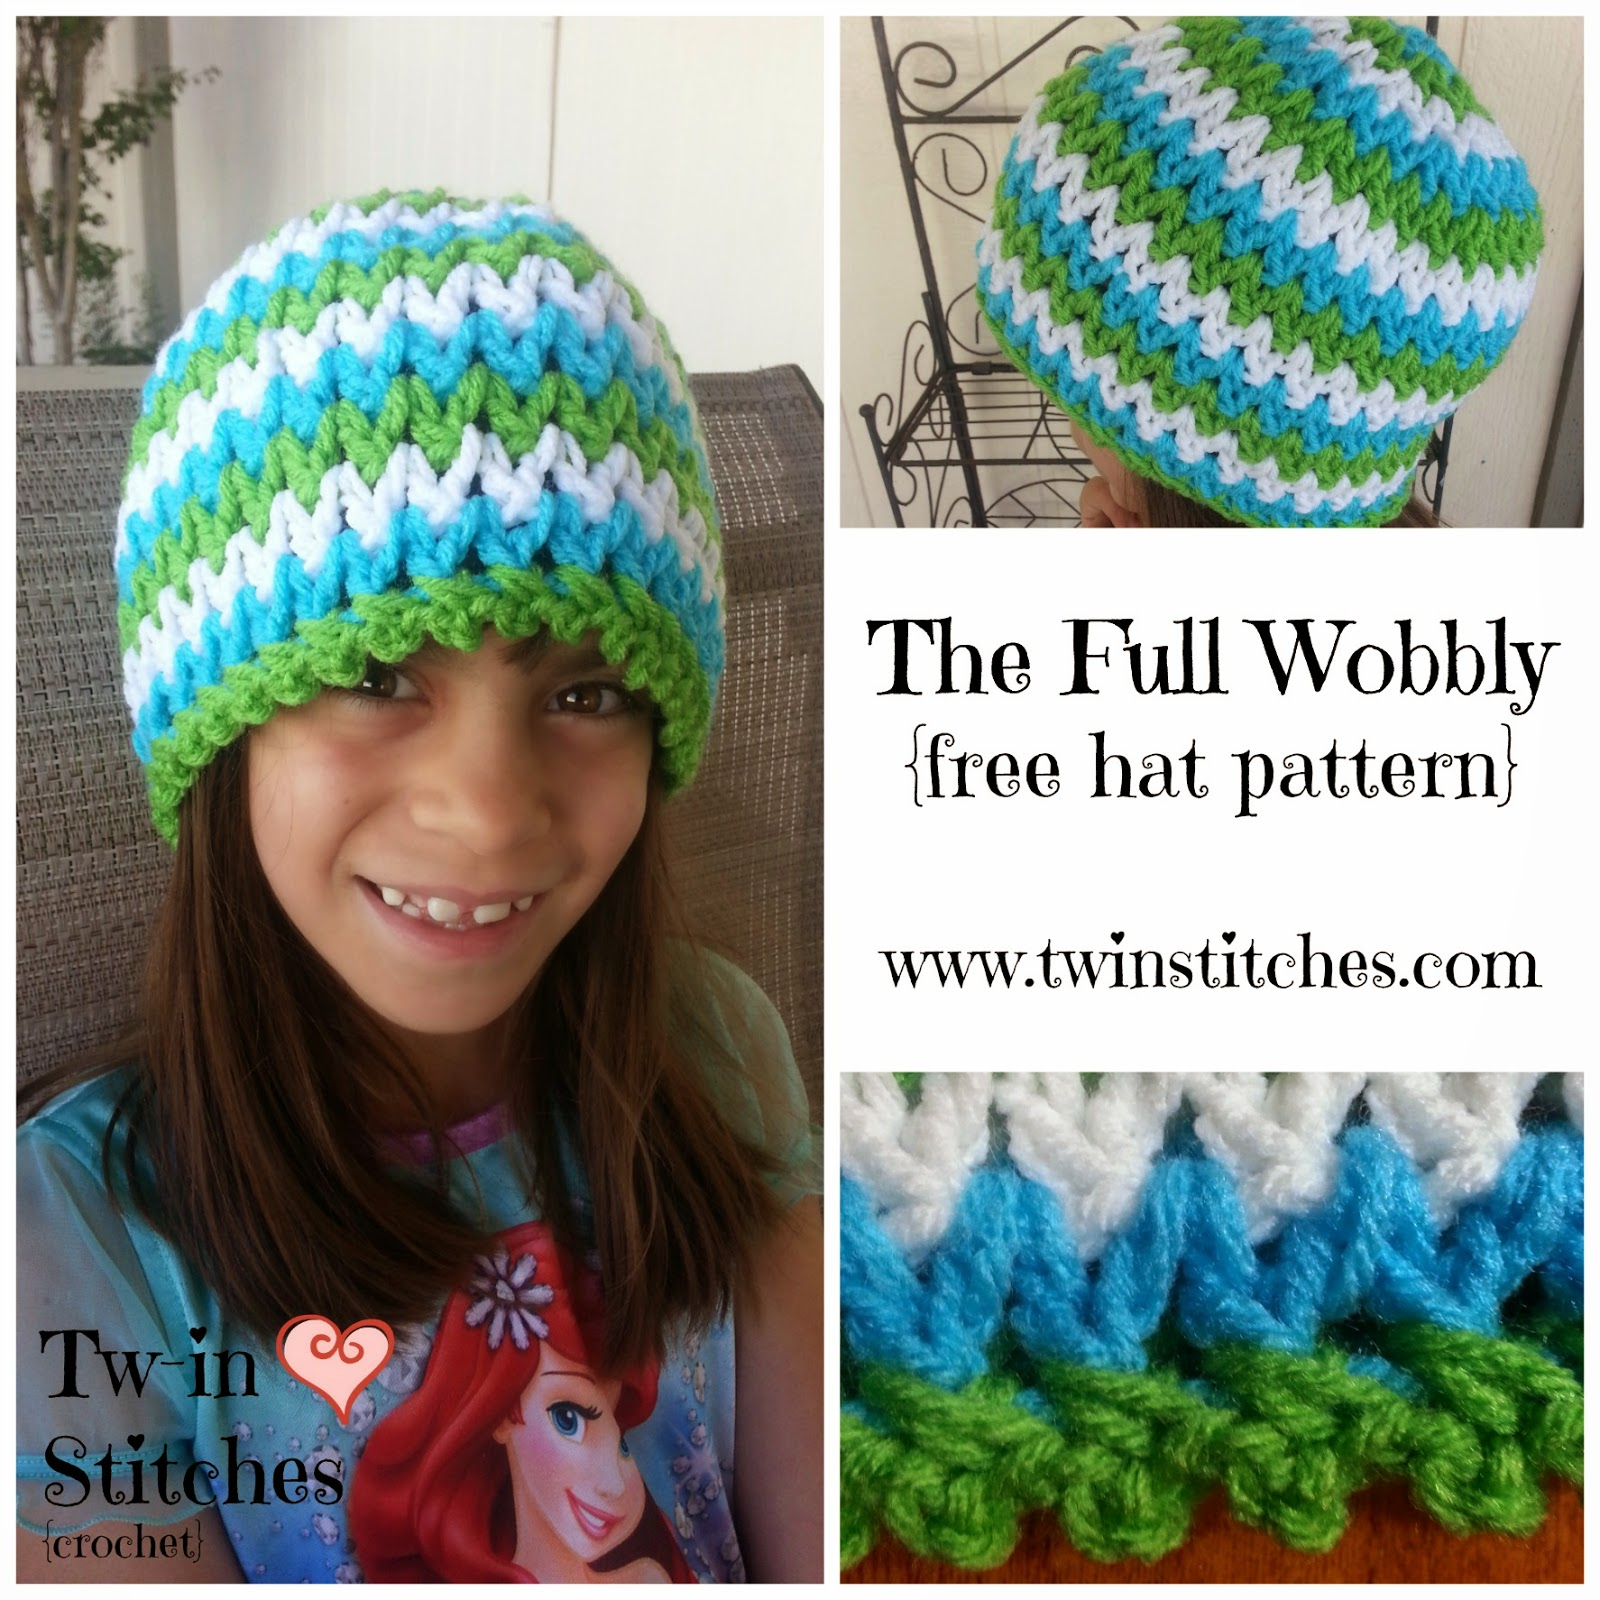 Tw-In Stitches  The Fully Wobbly - Free Hat Pattern  d343f7df3ad